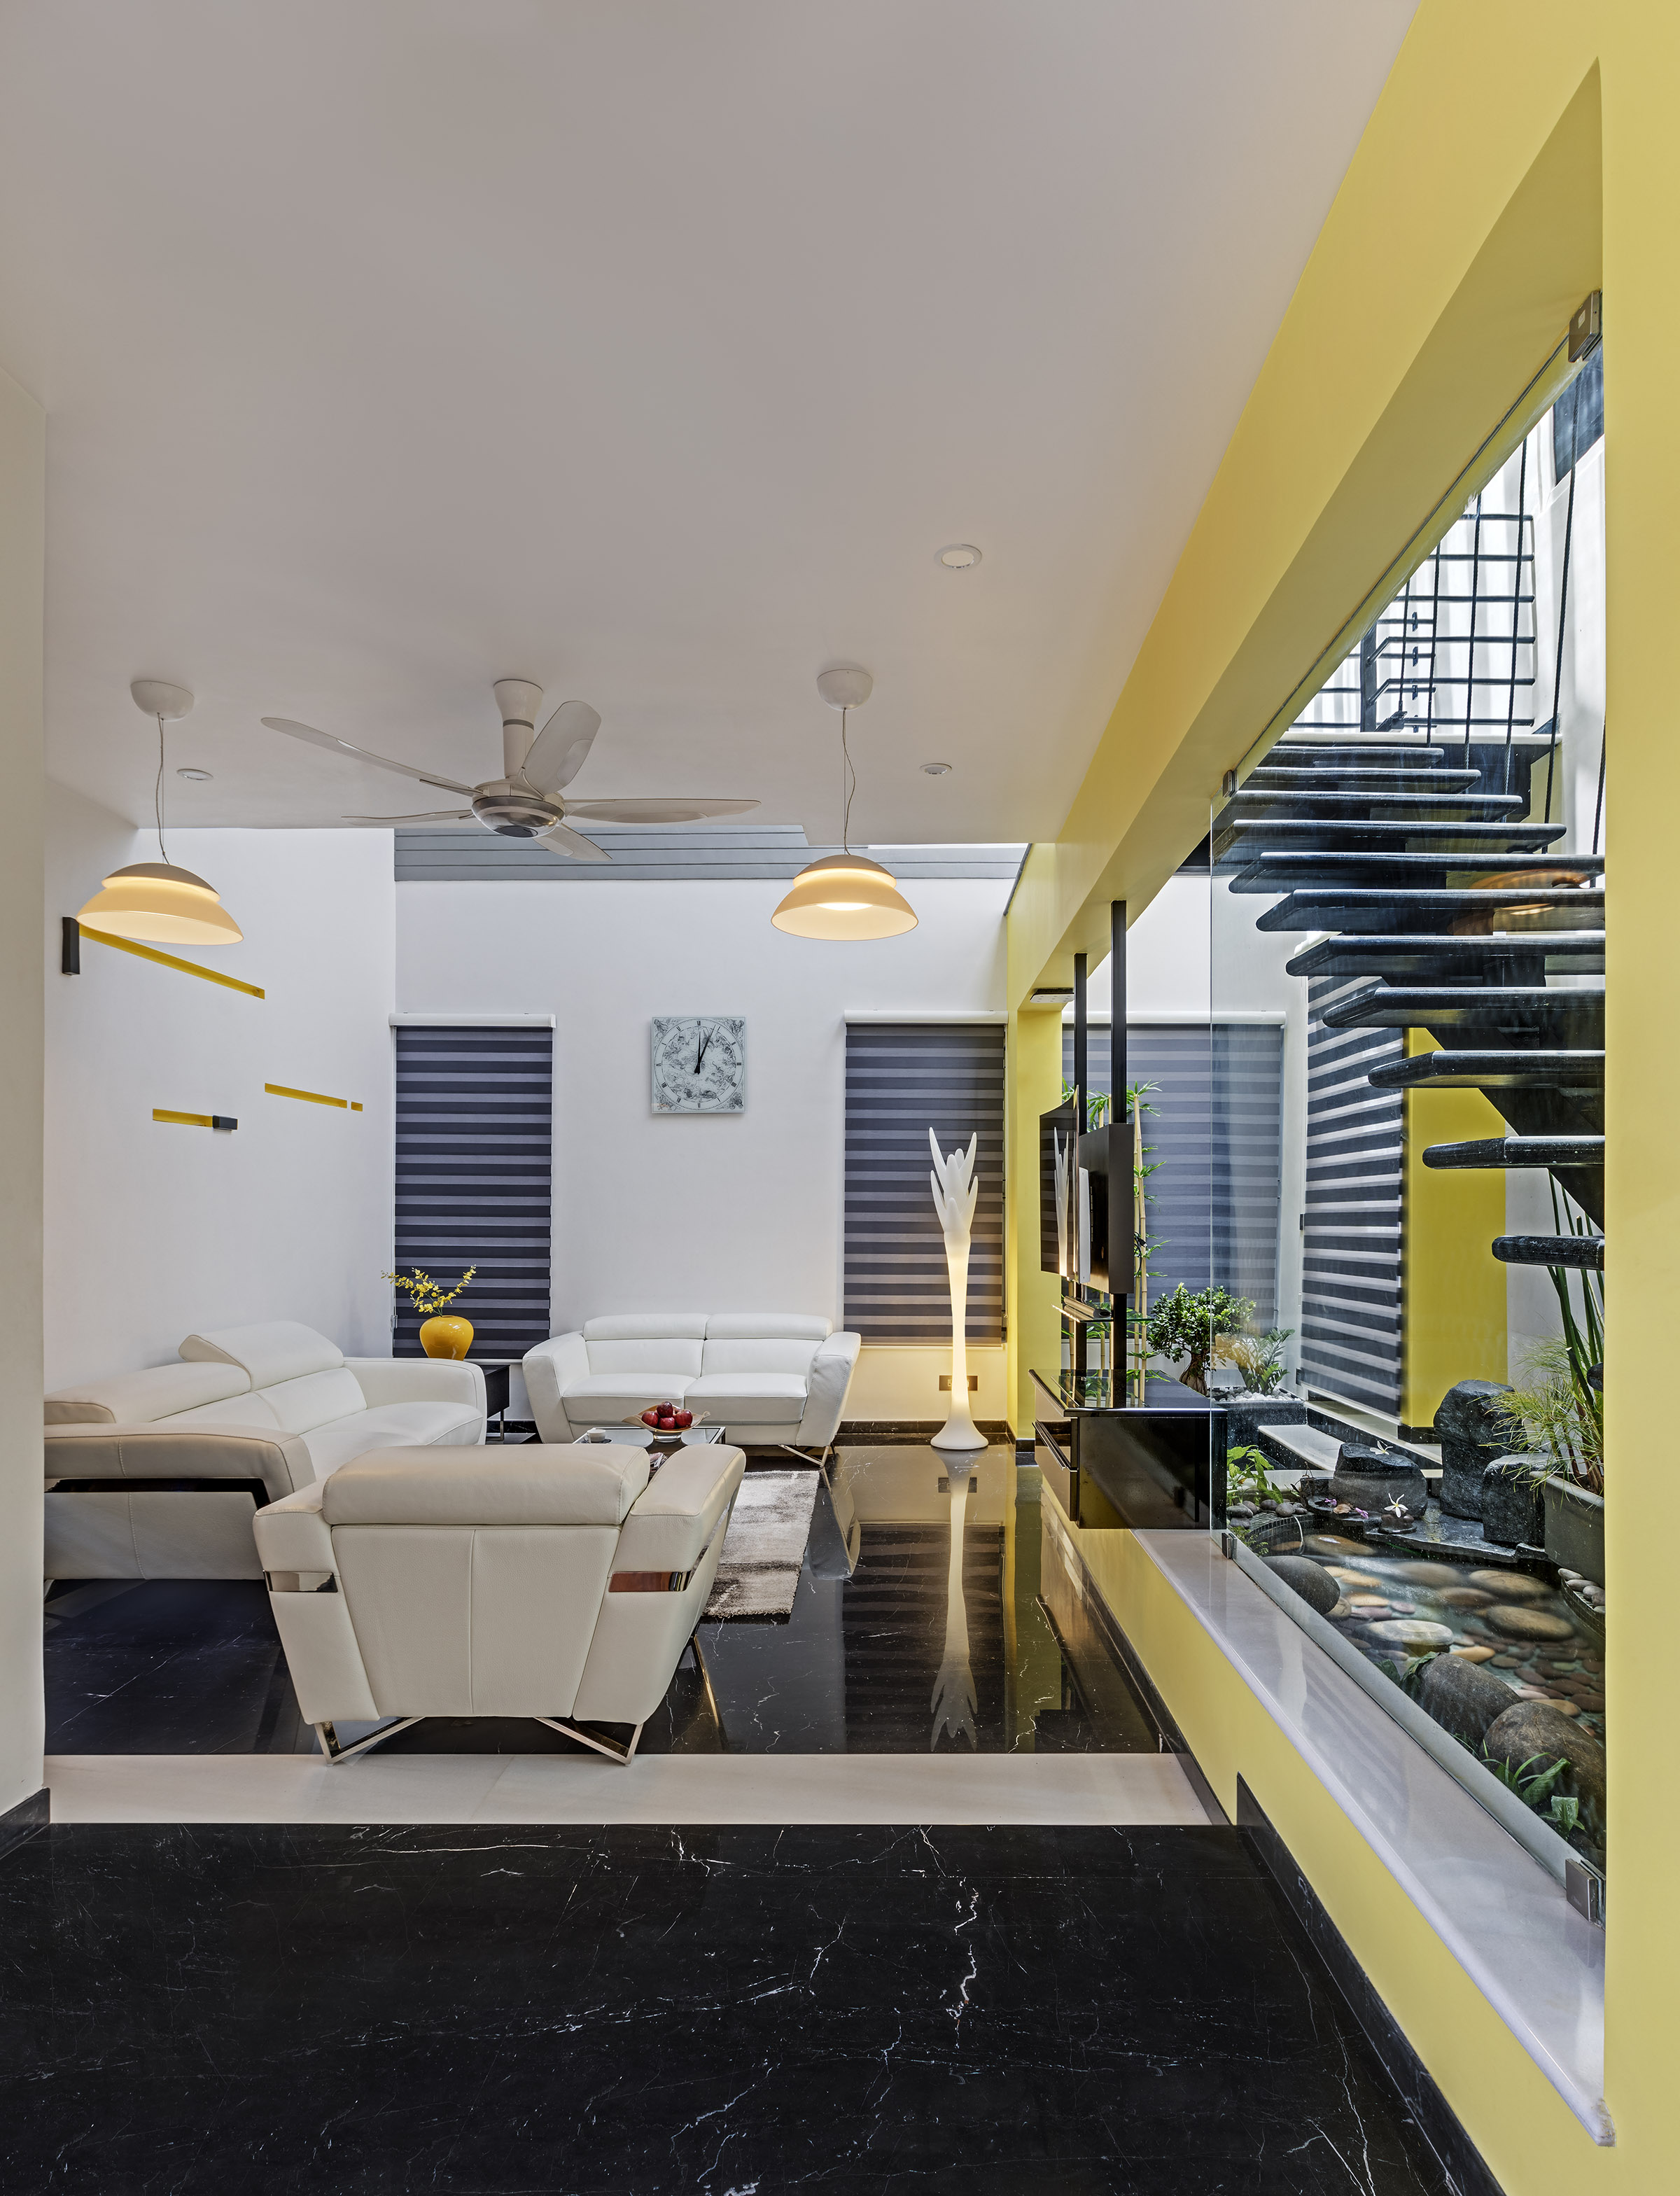 Residential Projects In Bangalore For 40x60 4bhk Ashwin Architects Archello